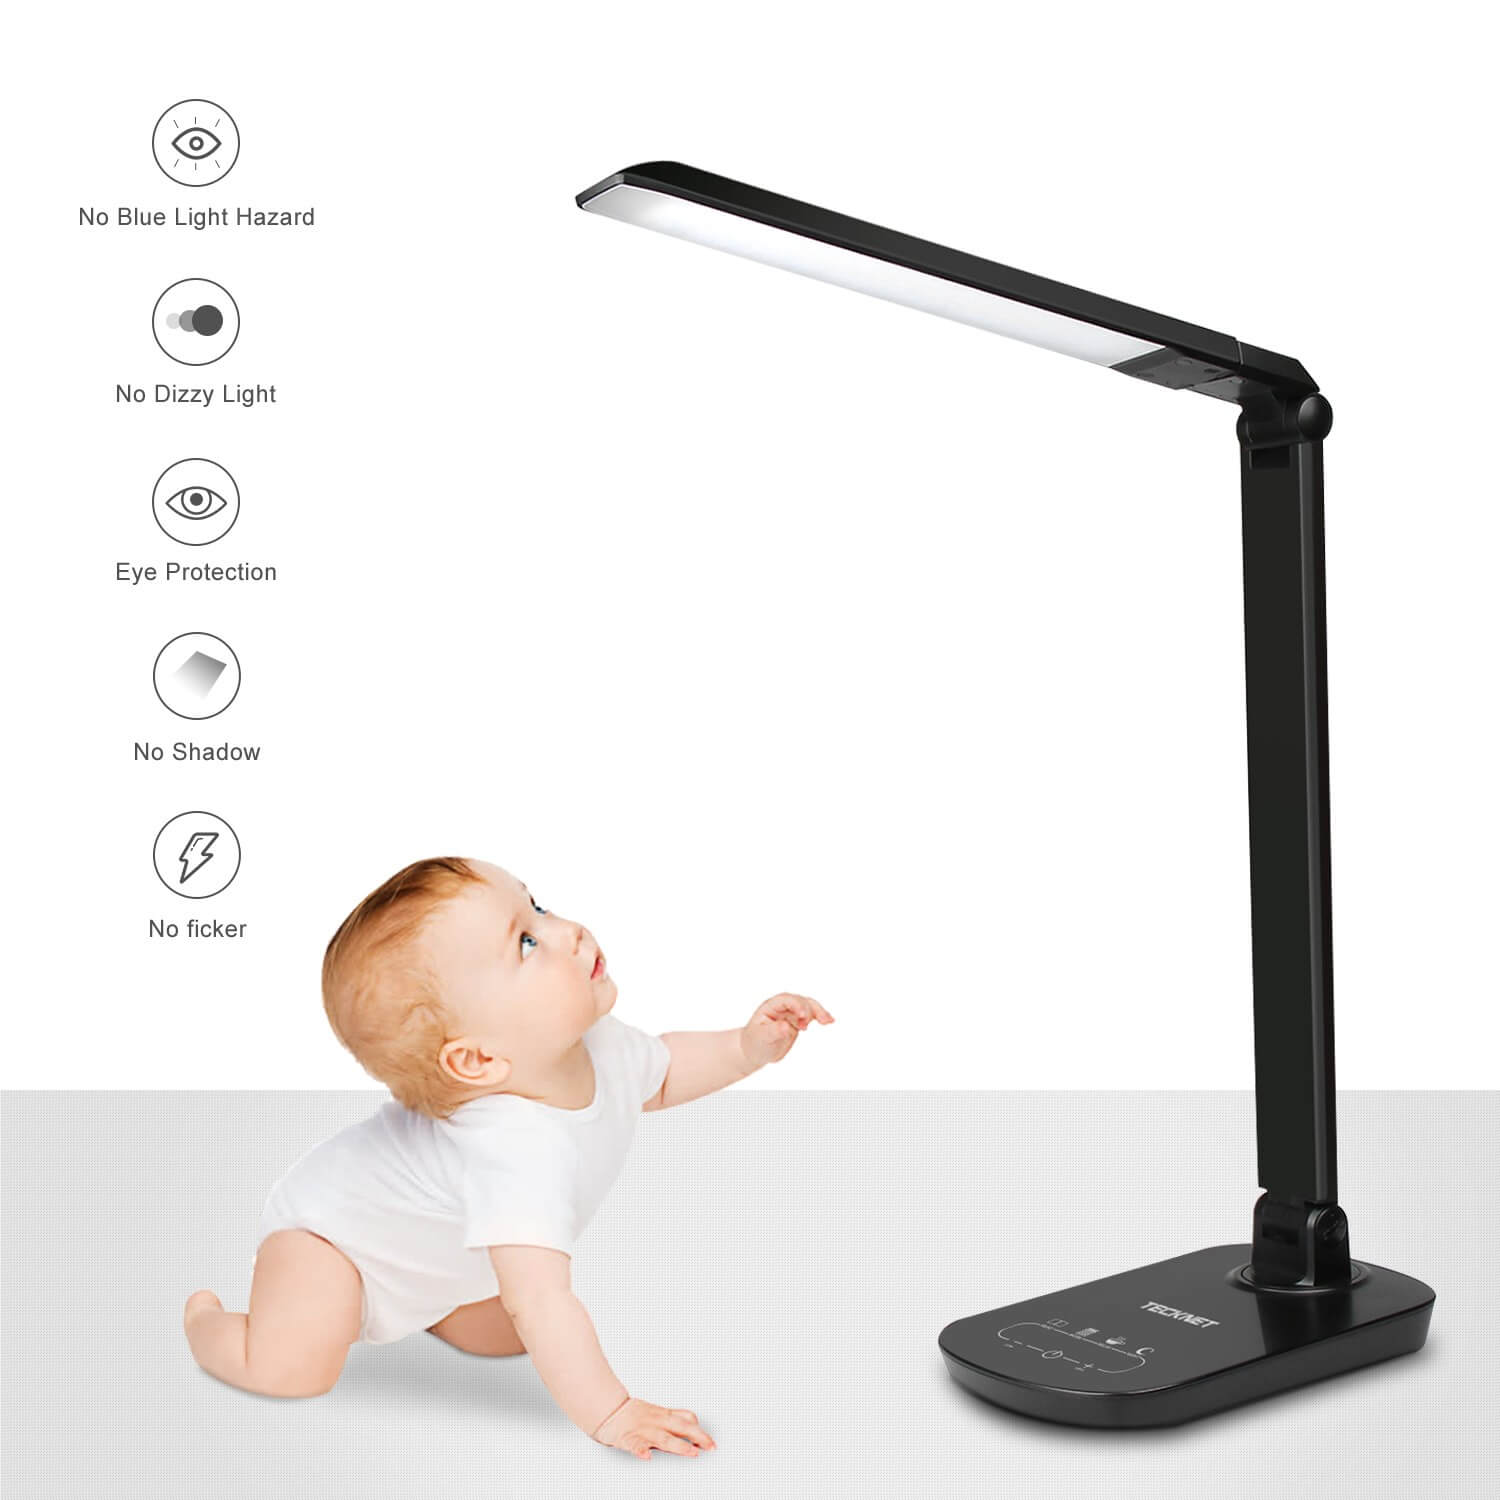 TeckNet LED12 15W EyeCare Dimmable LED Desk Lighting With Touch Control